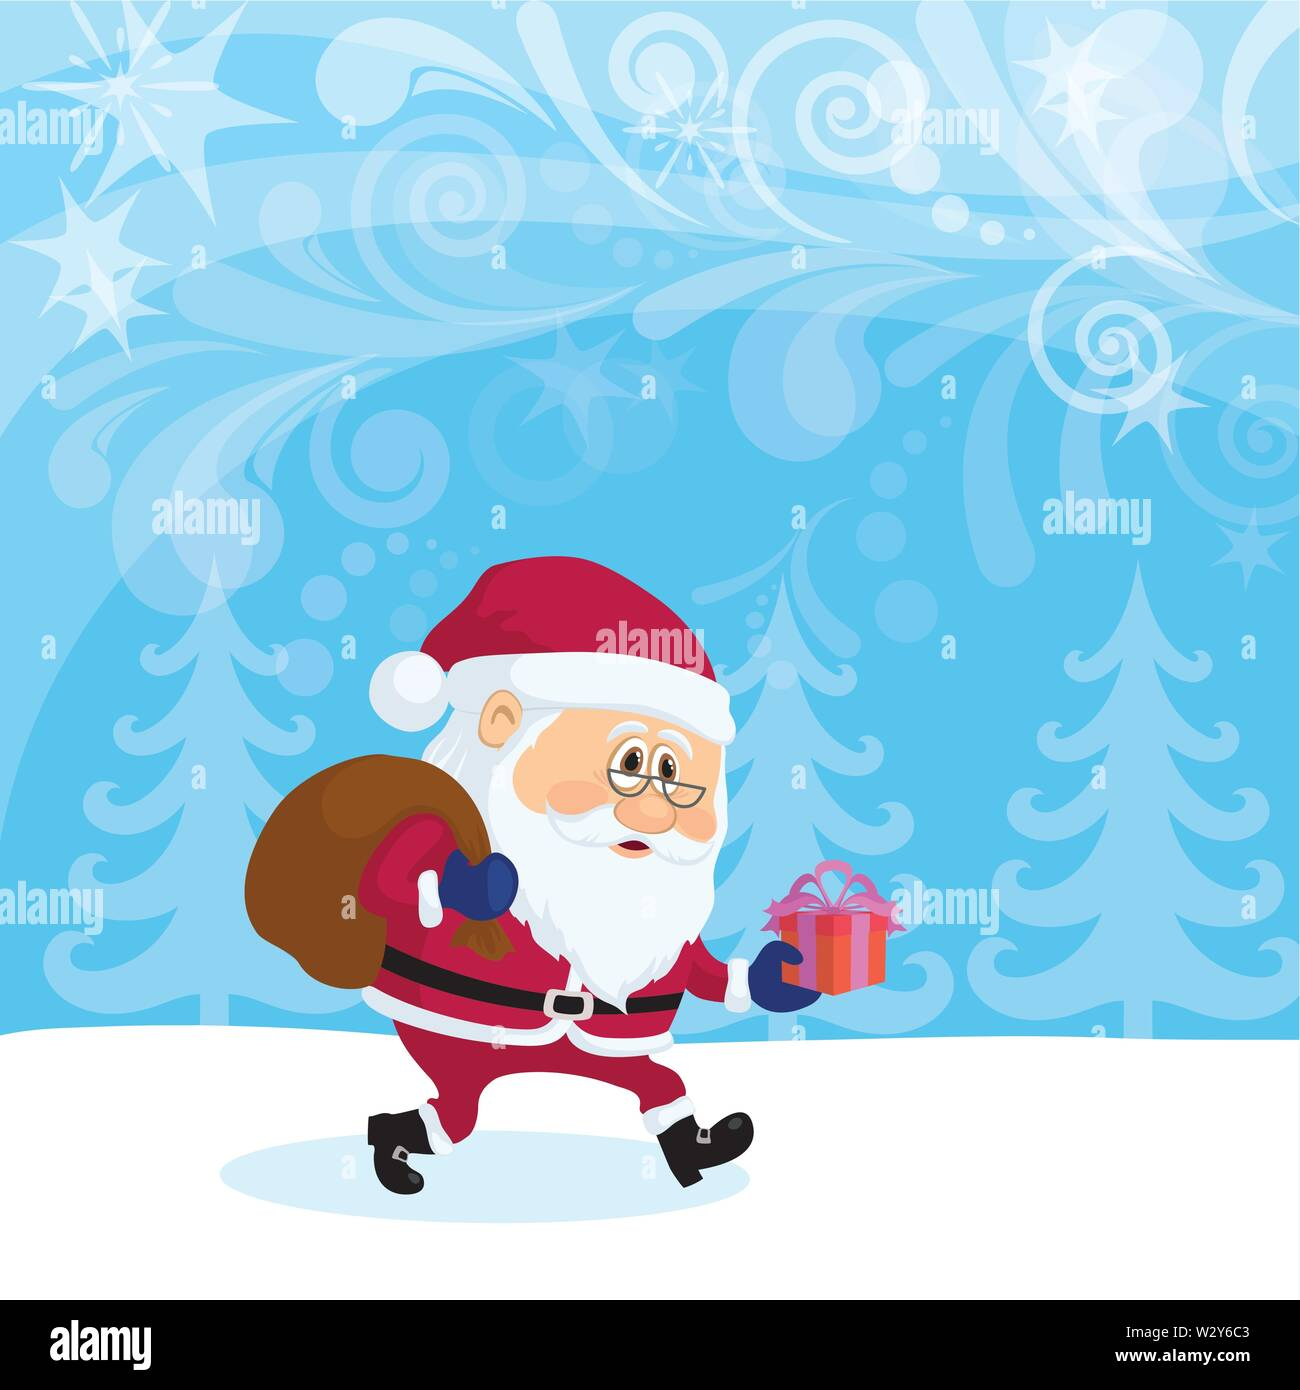 Santa Claus in Christmas Forest - Stock Image